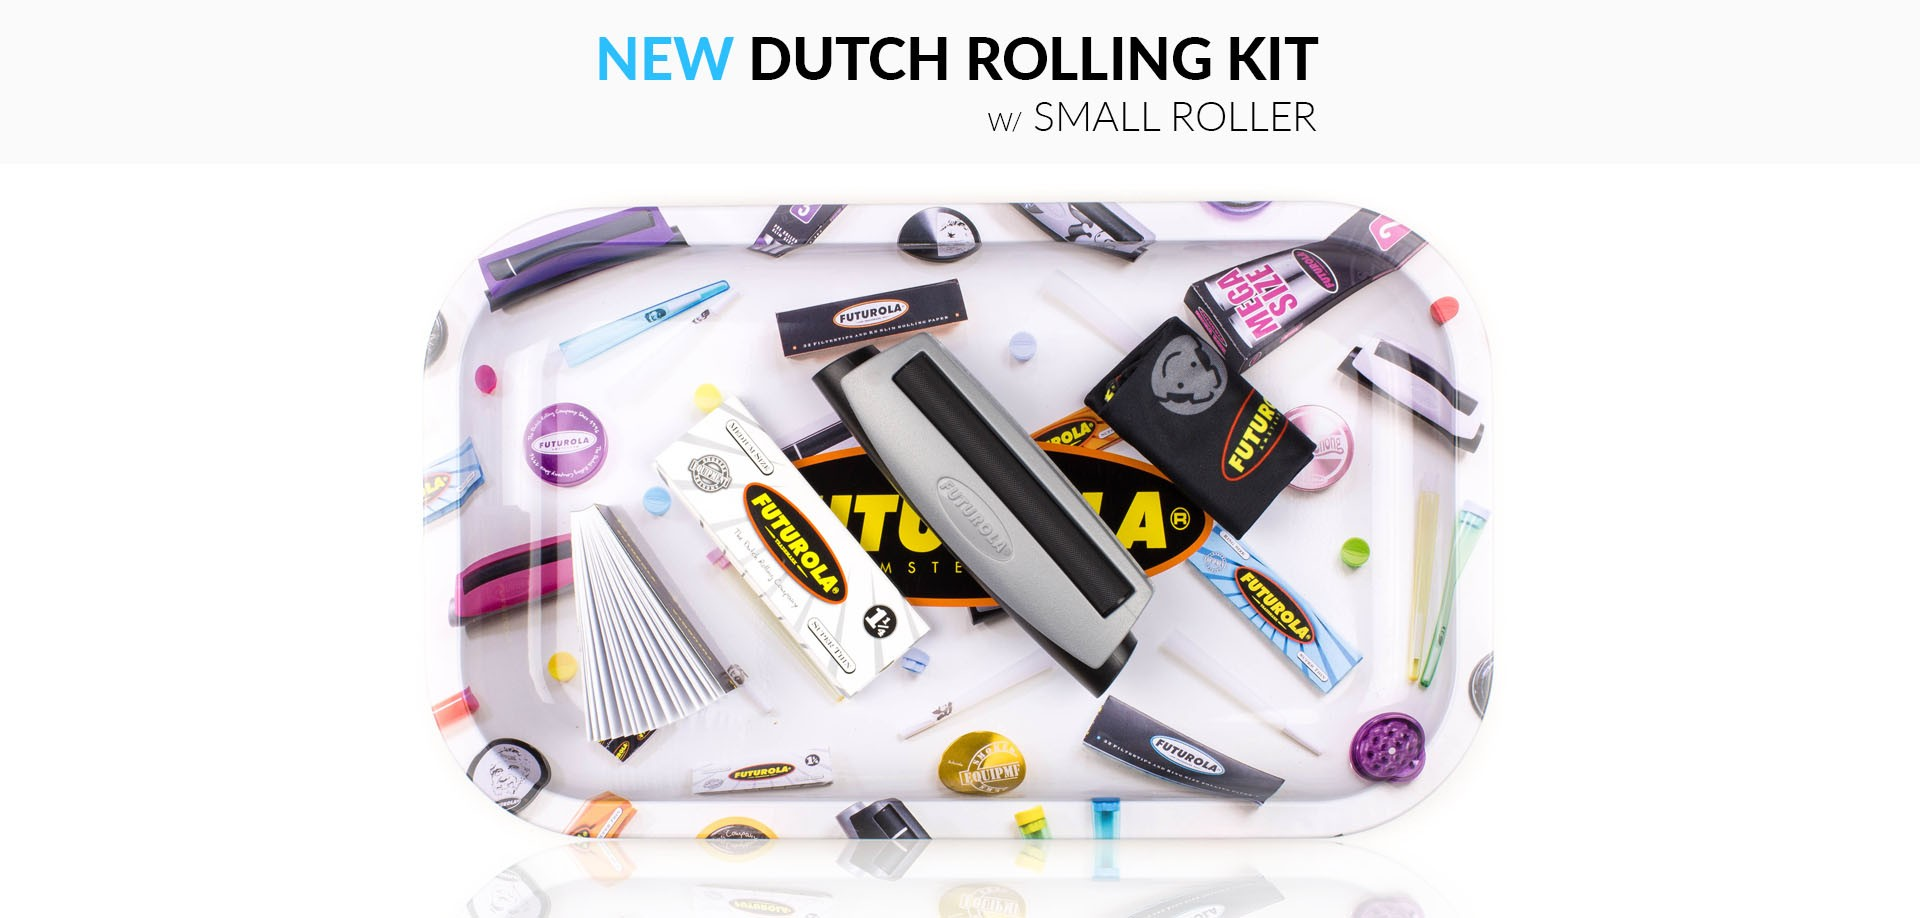 DUTCH ROLLING KIT W/ SMALL ROLLER